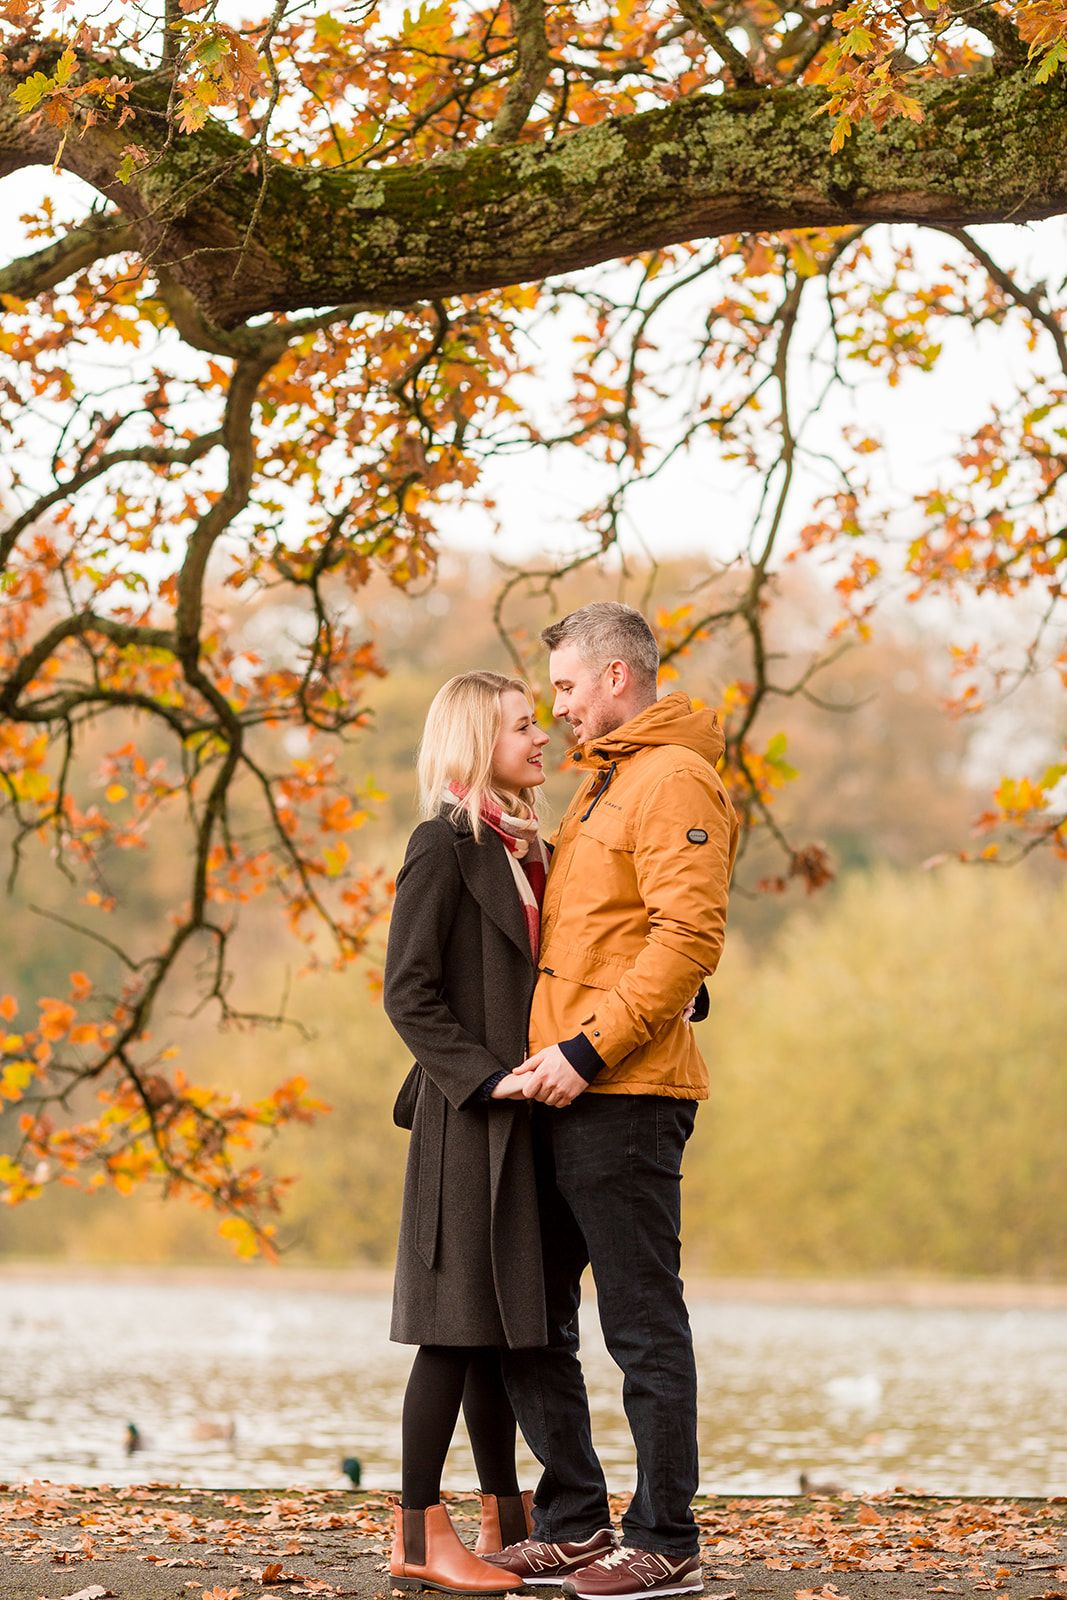 love autumn engagement sessions